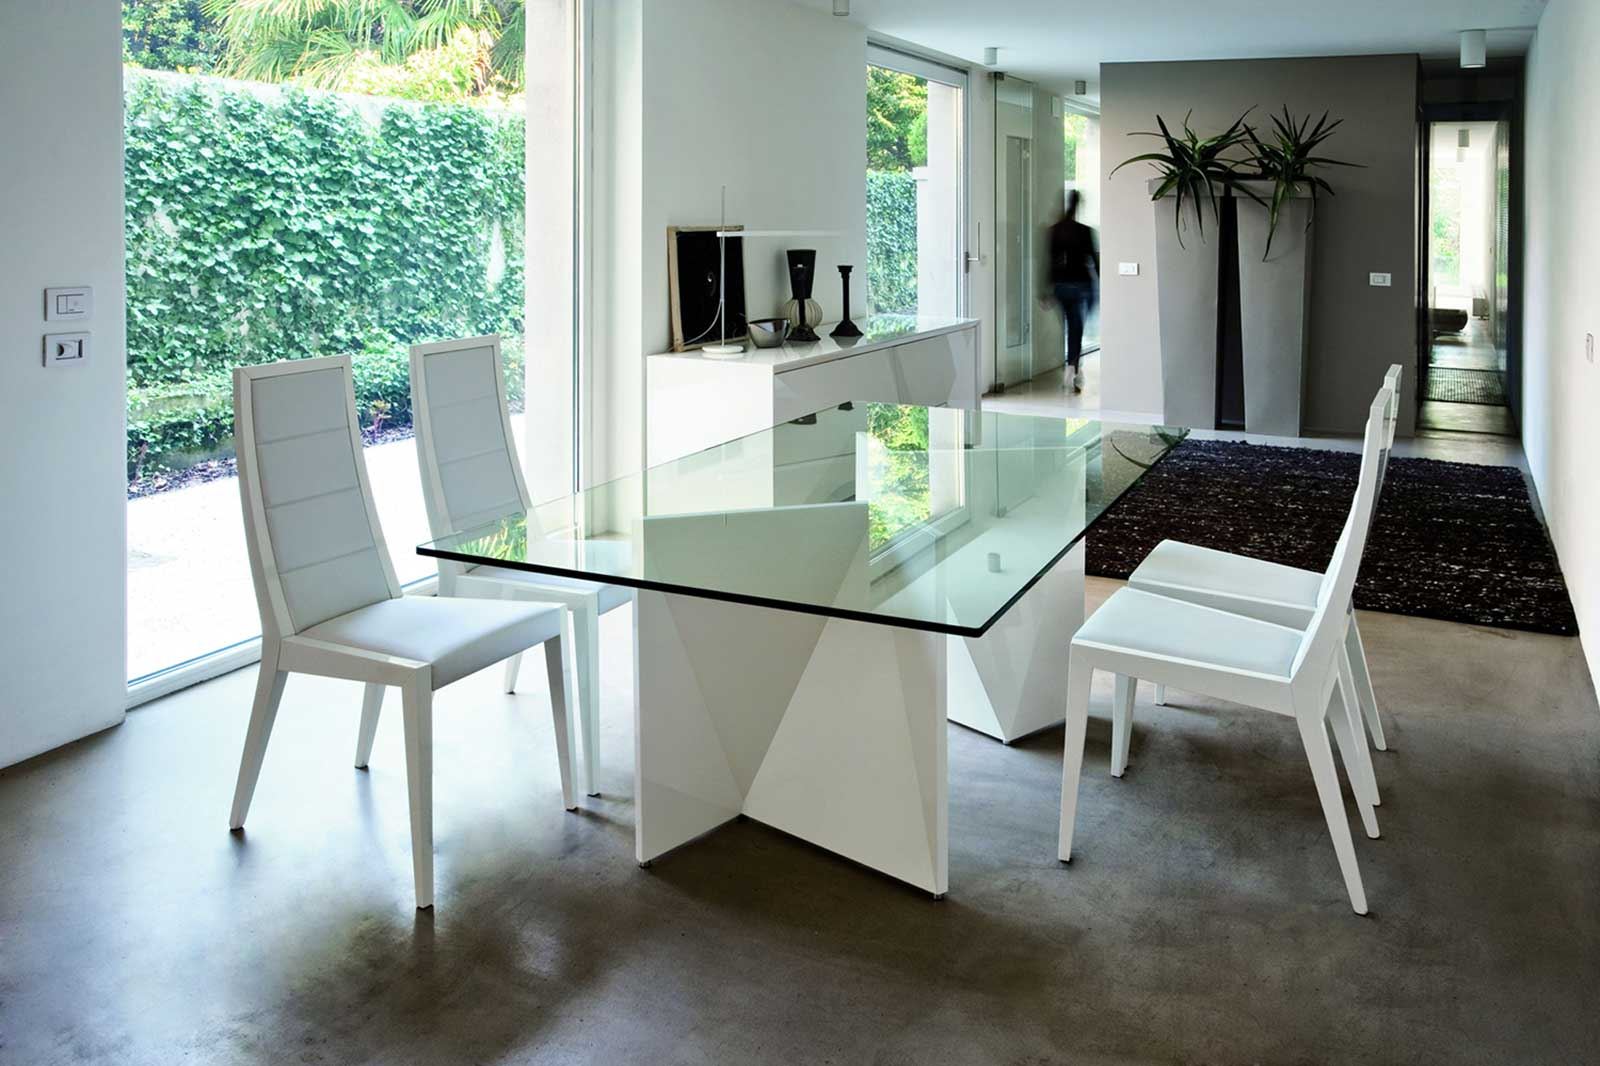 oom furniture best online furniture shopping: dining r